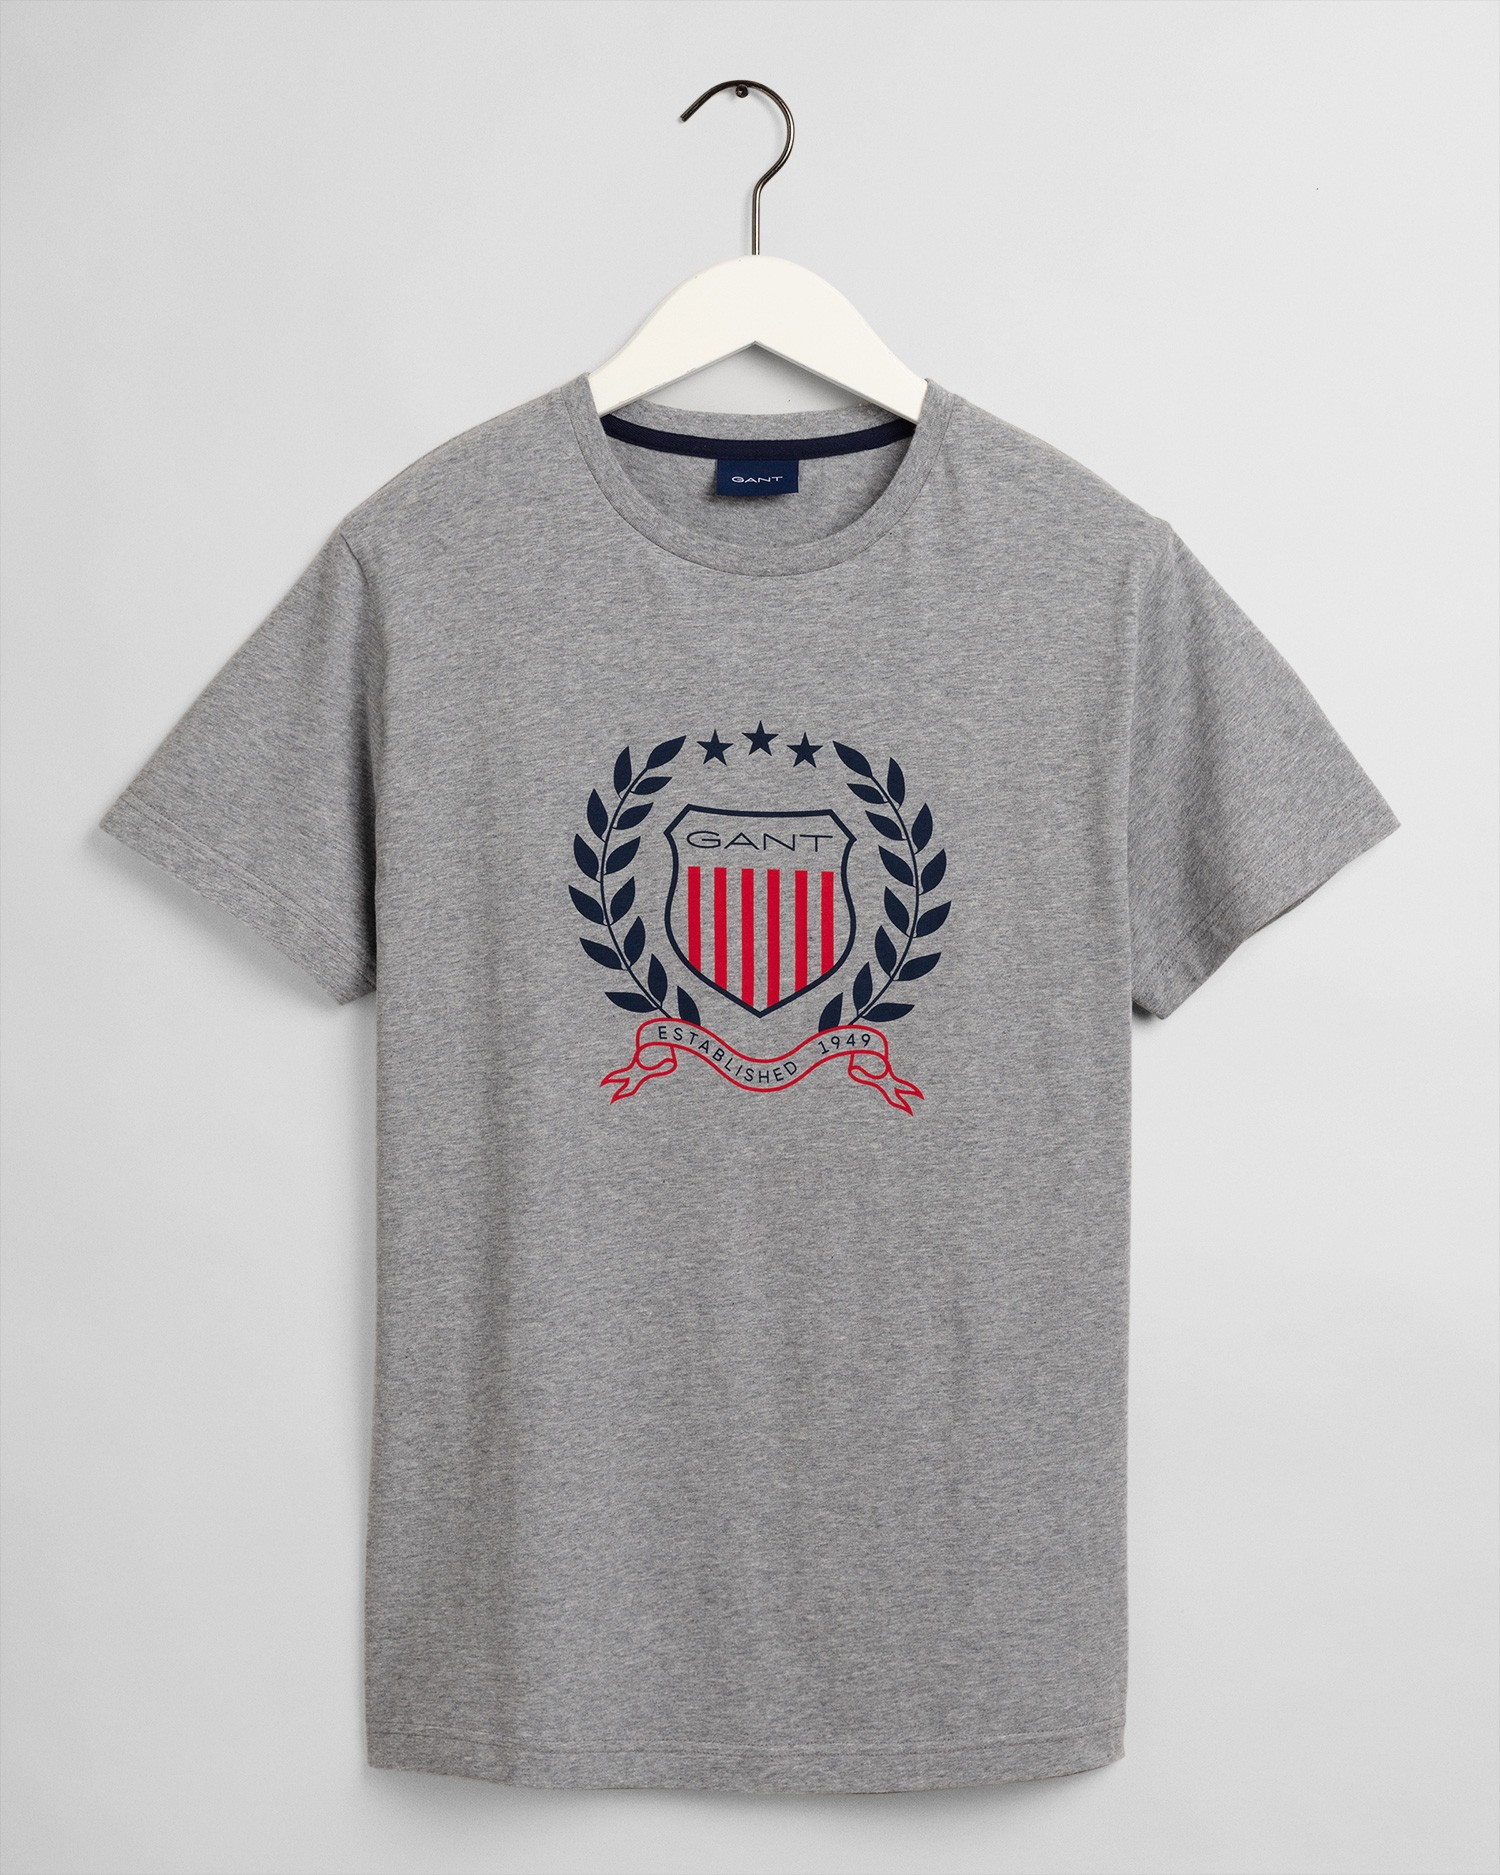 GANT Men's Crest T-Shirt - 2003088